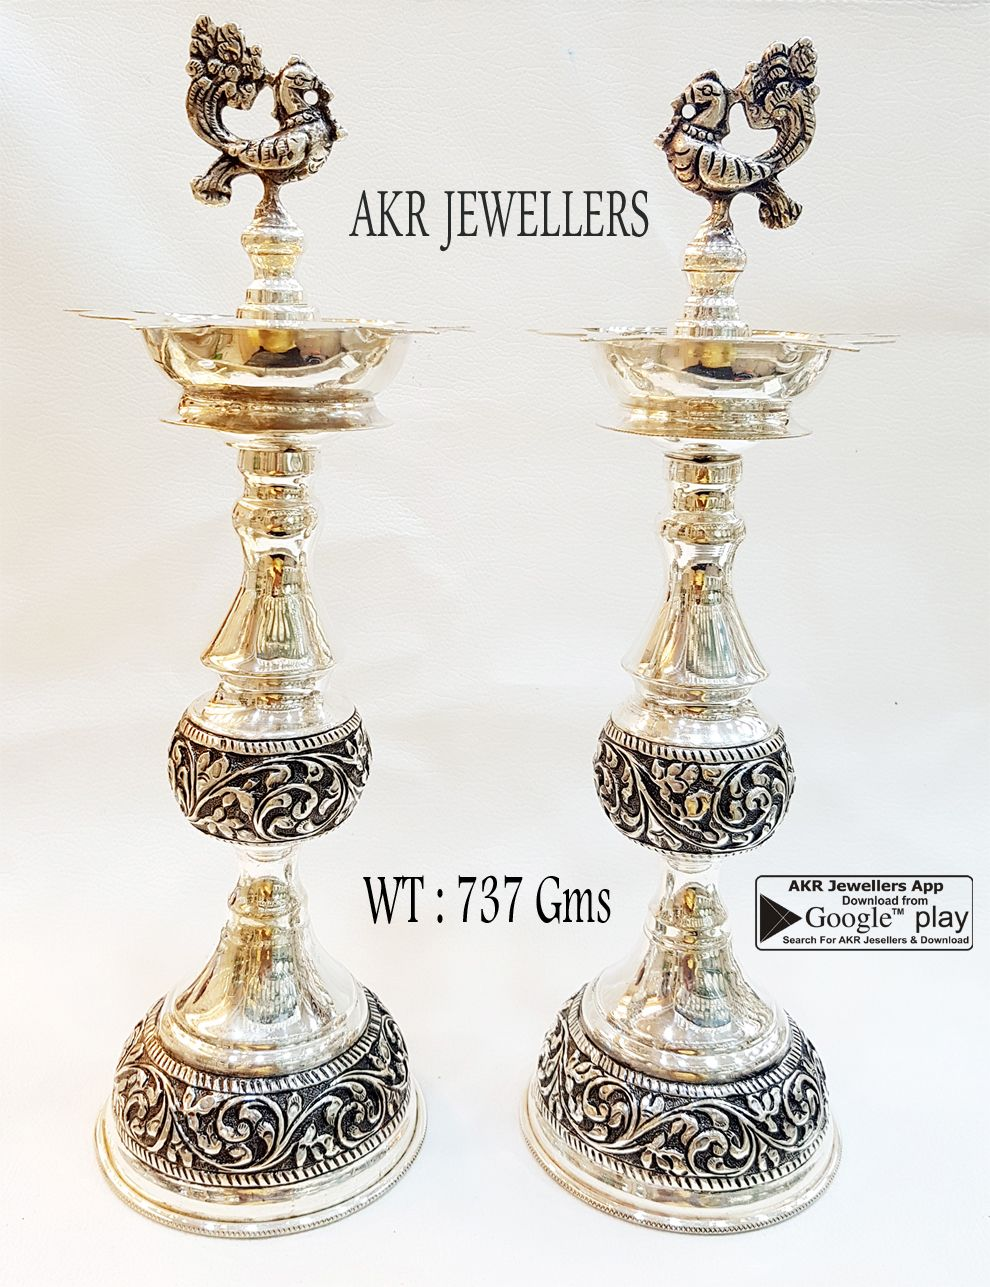 silver lamp designs on 92 5 silver antique peacock lamps silver pooja items trendy silver jewelry silver lamp 92 5 silver antique peacock lamps